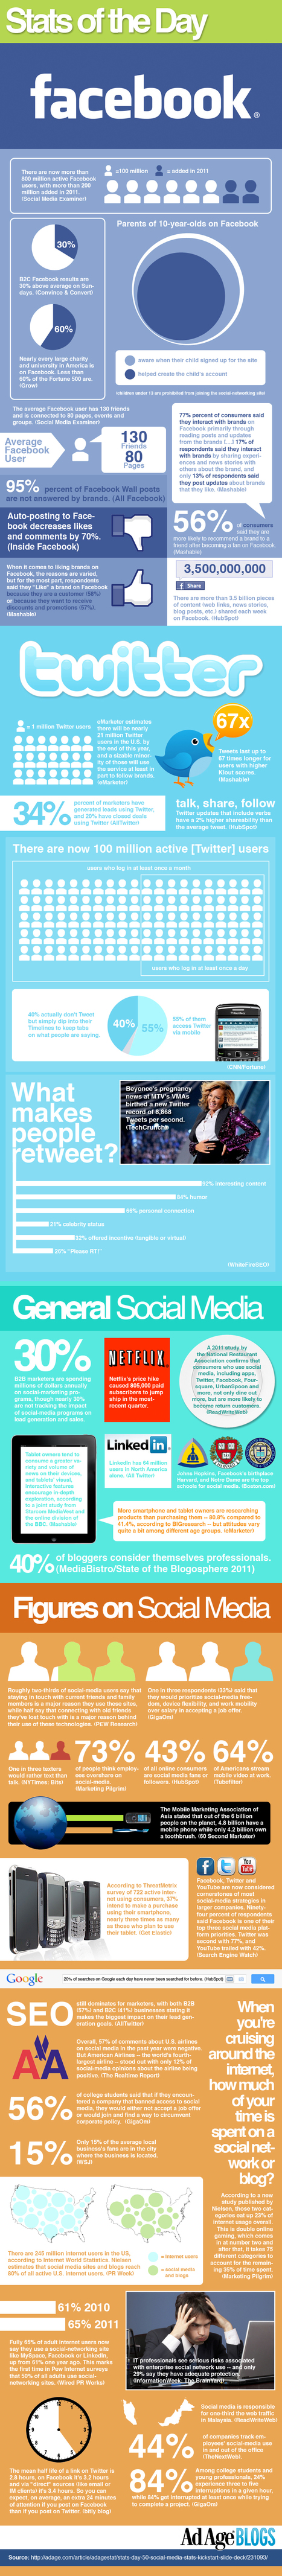 Social Media Statistics of the Day | Internet Marketing Blog | Social Media (network, technology, blog, community, virtual reality, etc...) | Scoop.it